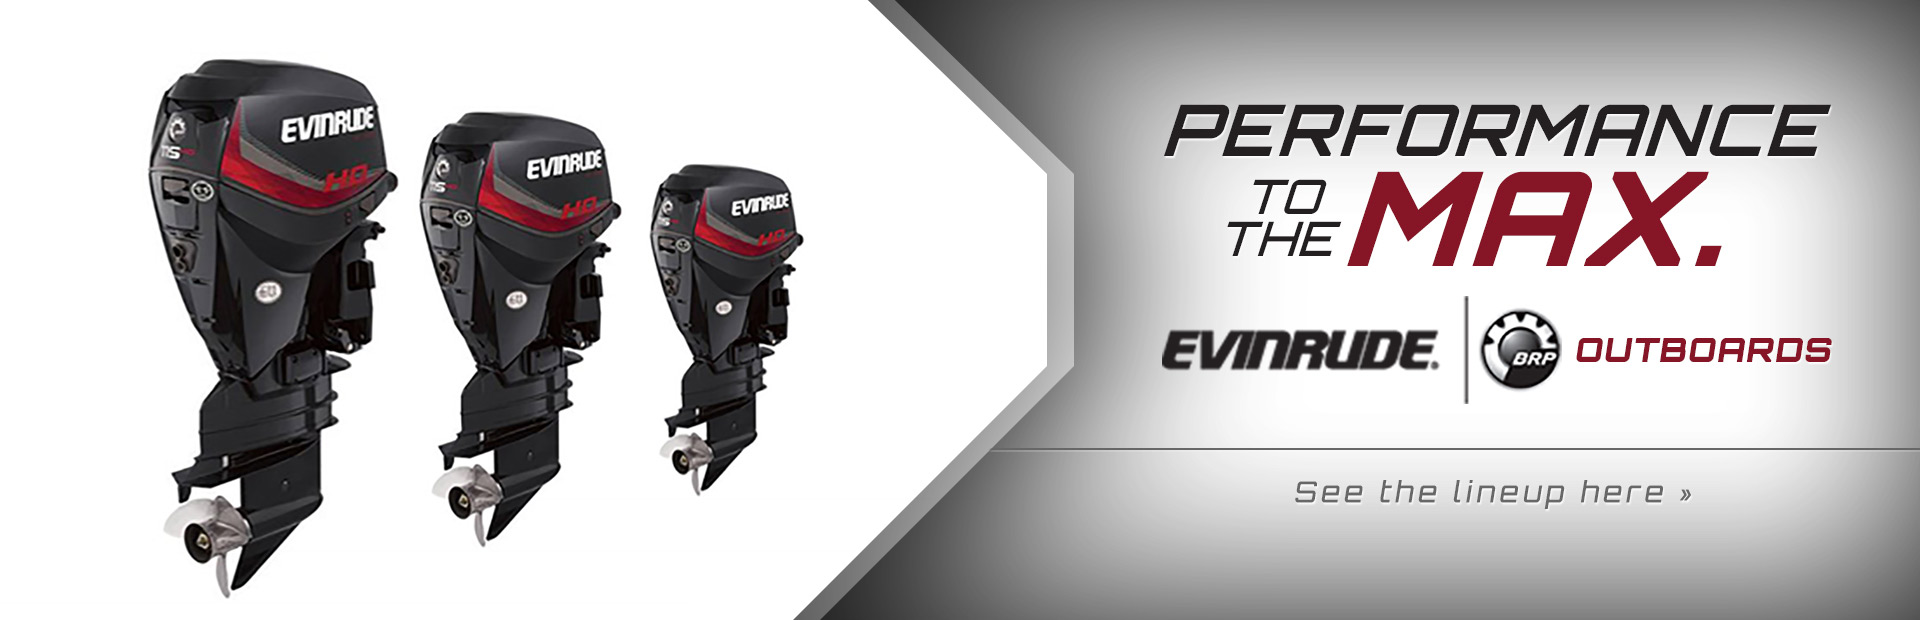 Evinrude Outboards: Click here to view the lineup.